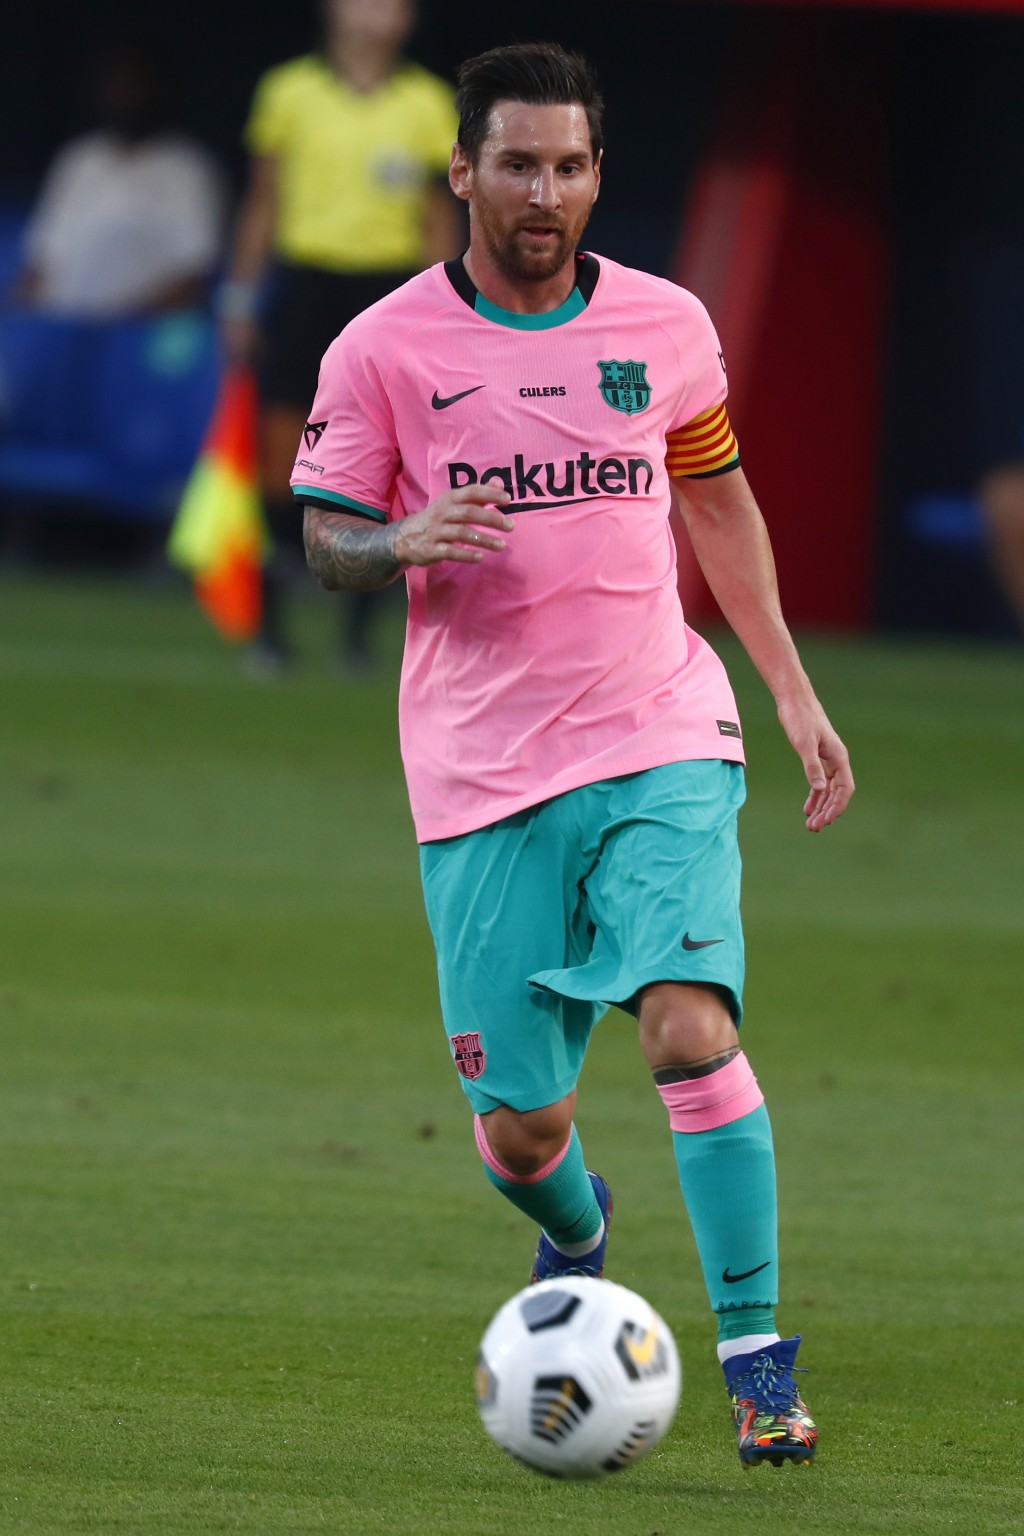 Barcelona's Lionel Messi controls the ball during the pre-season friendly soccer match between Barcelona and Girona at the Johan Cruyff Stadium in Bar...